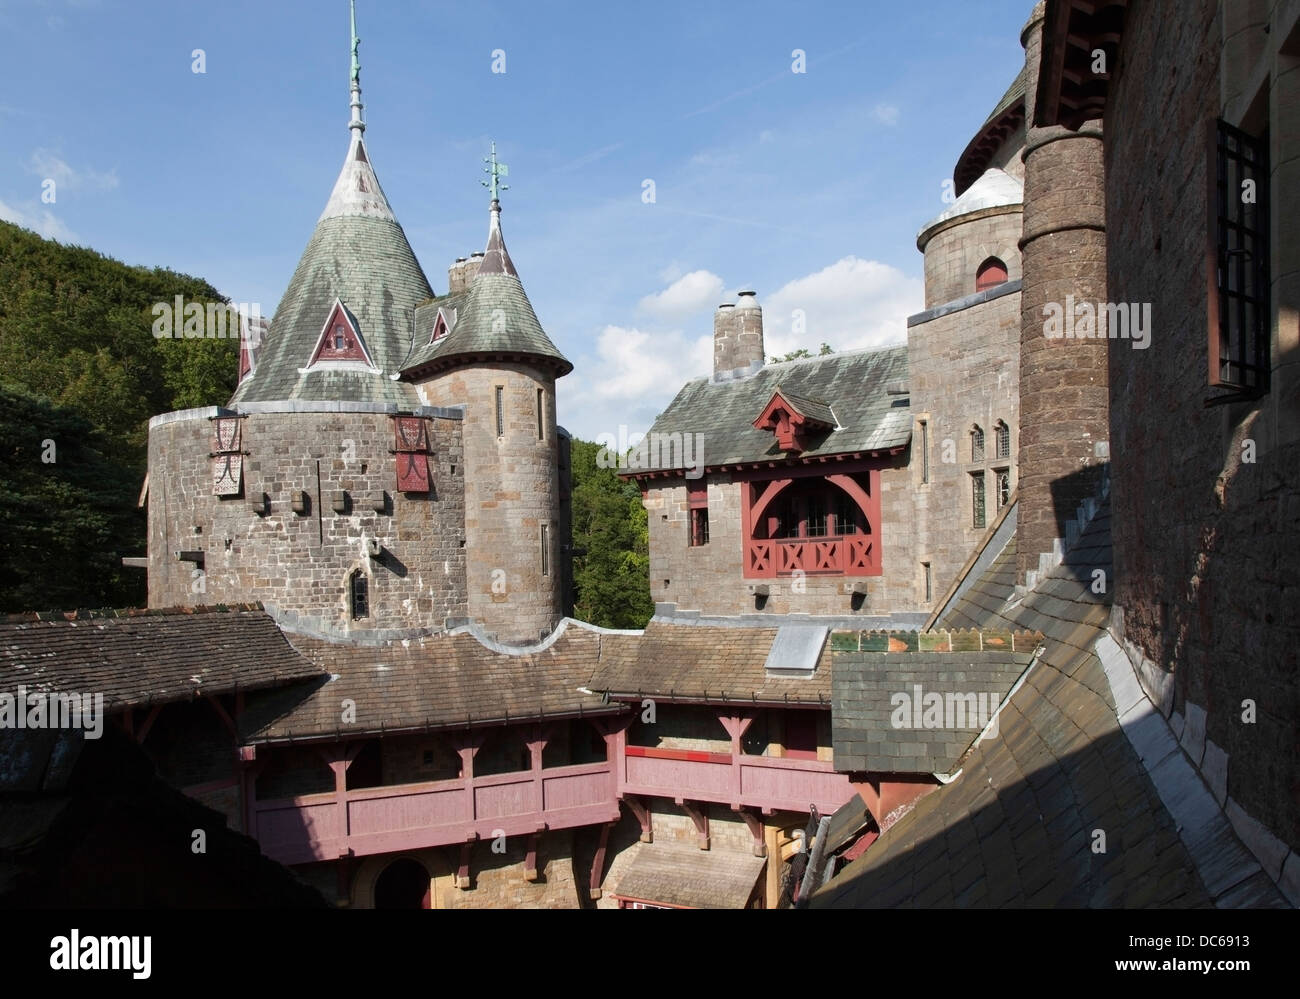 Castell Coch English Red Castle Gothic Revival Situated To The North Of Cardiff In Wales